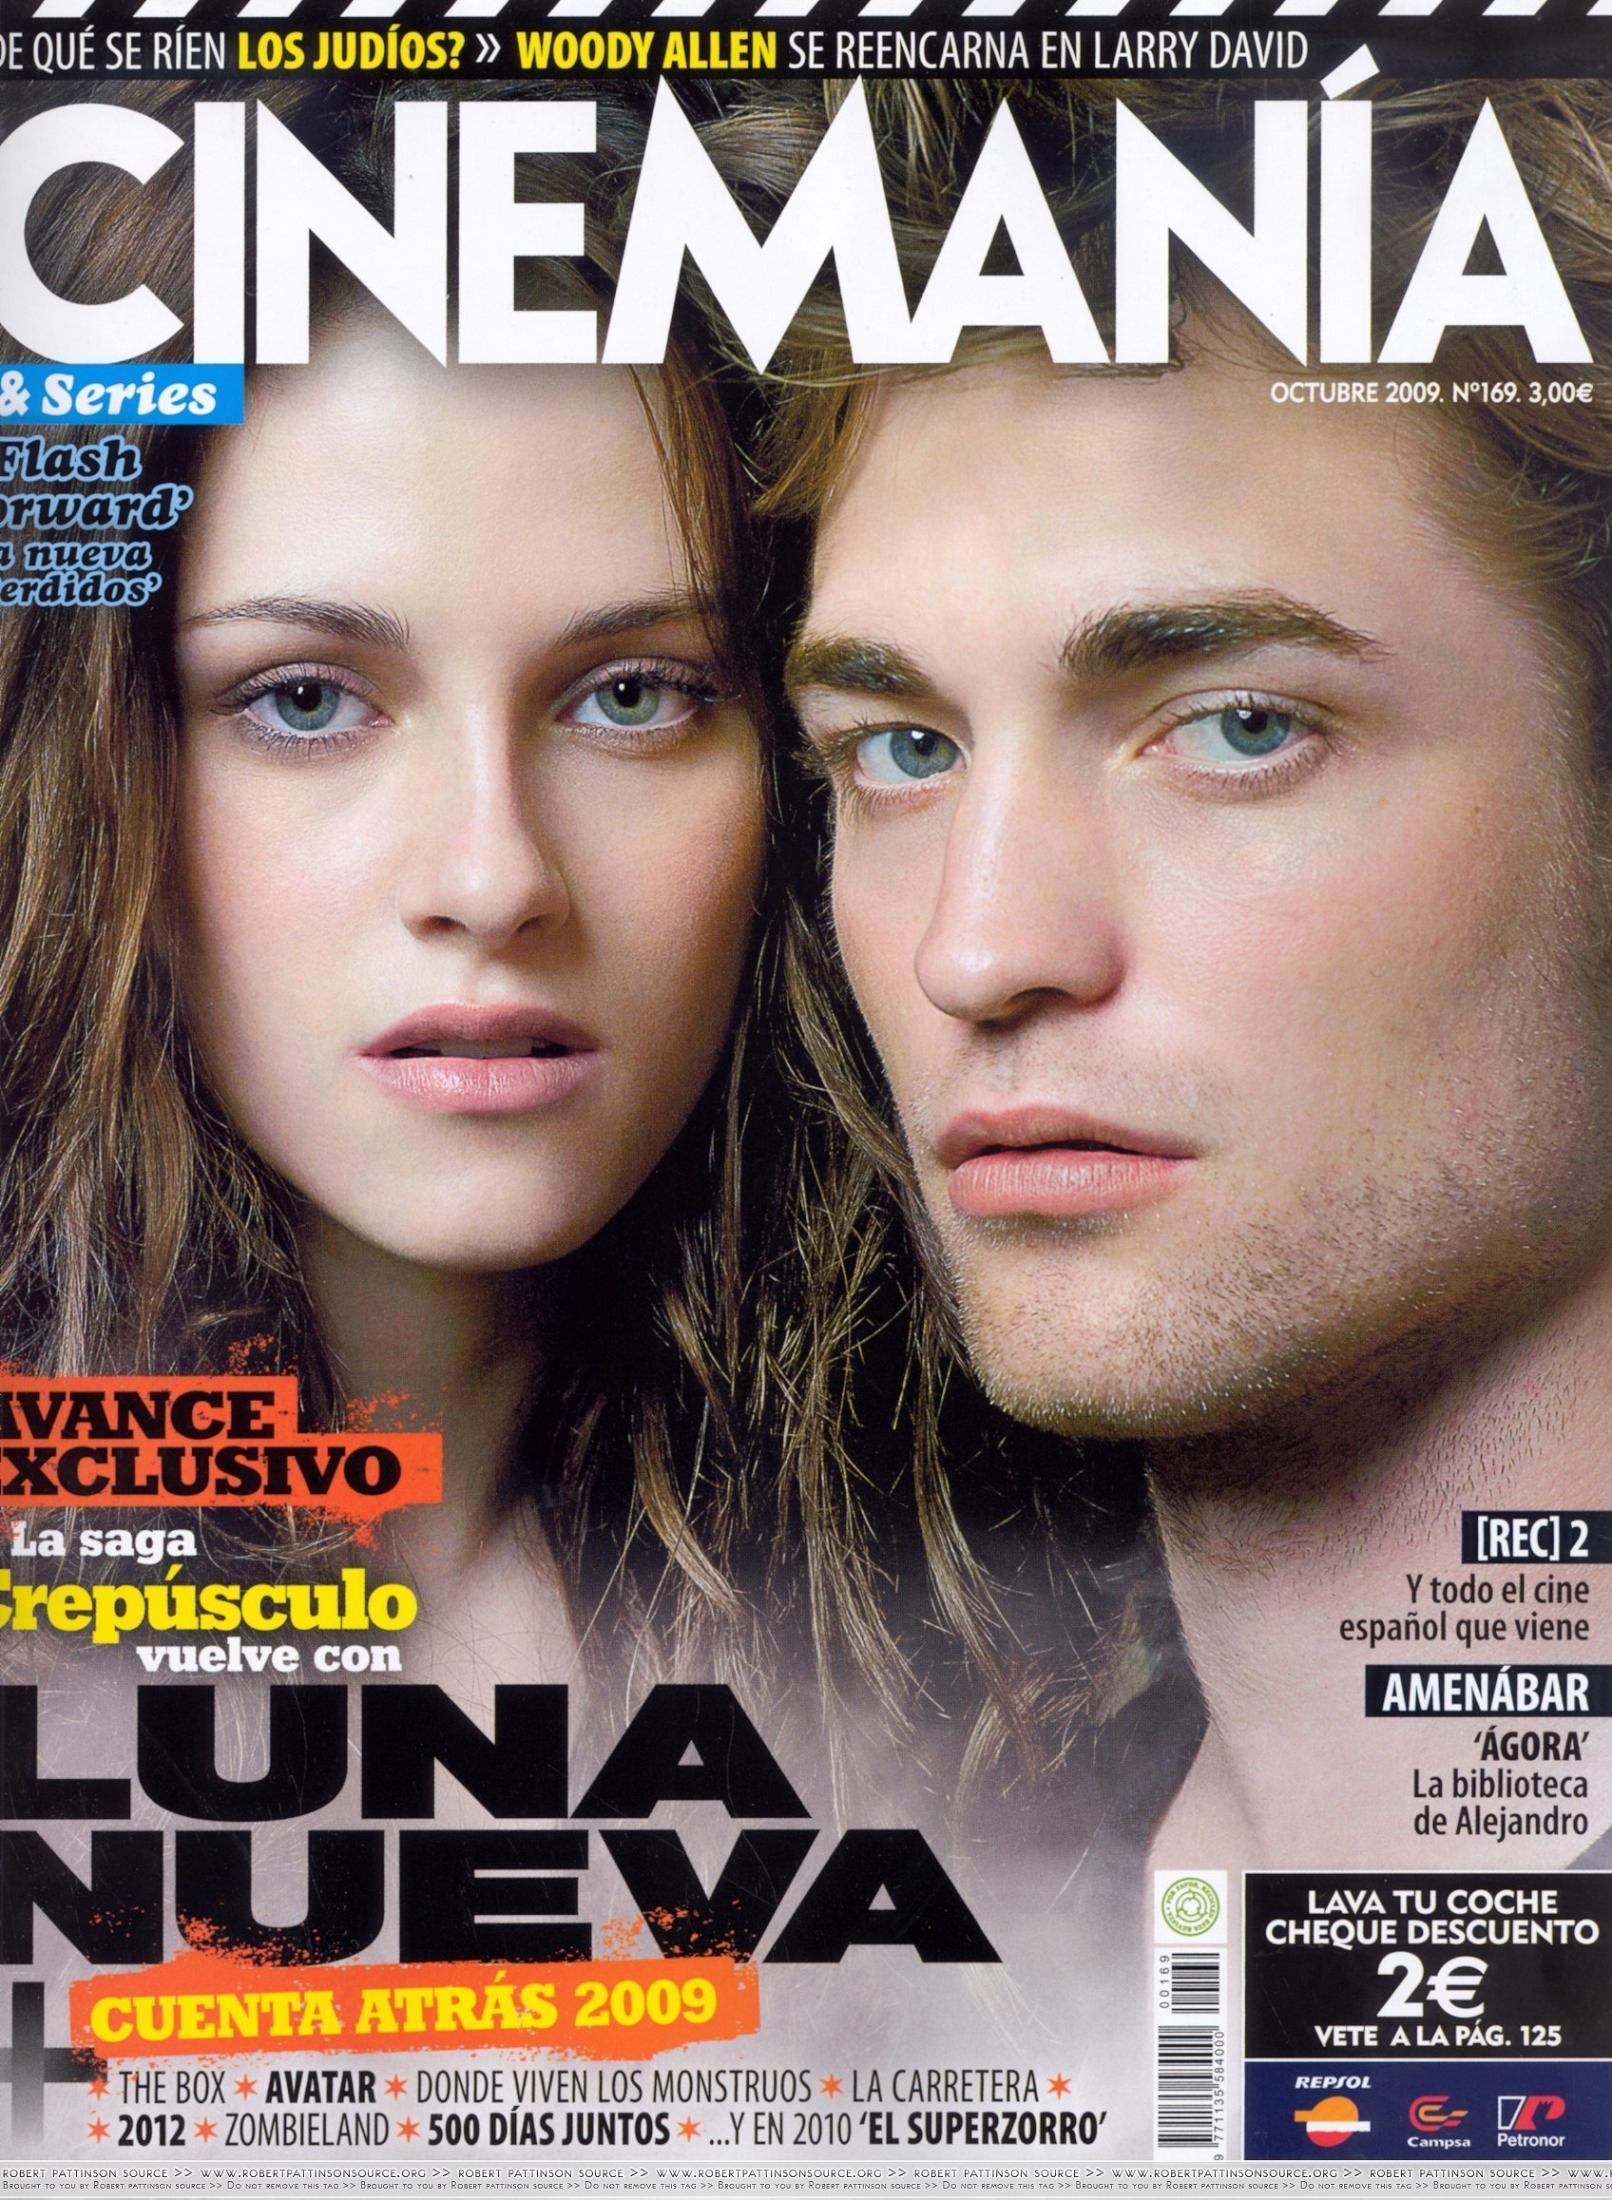 Cinemania Mag Scans